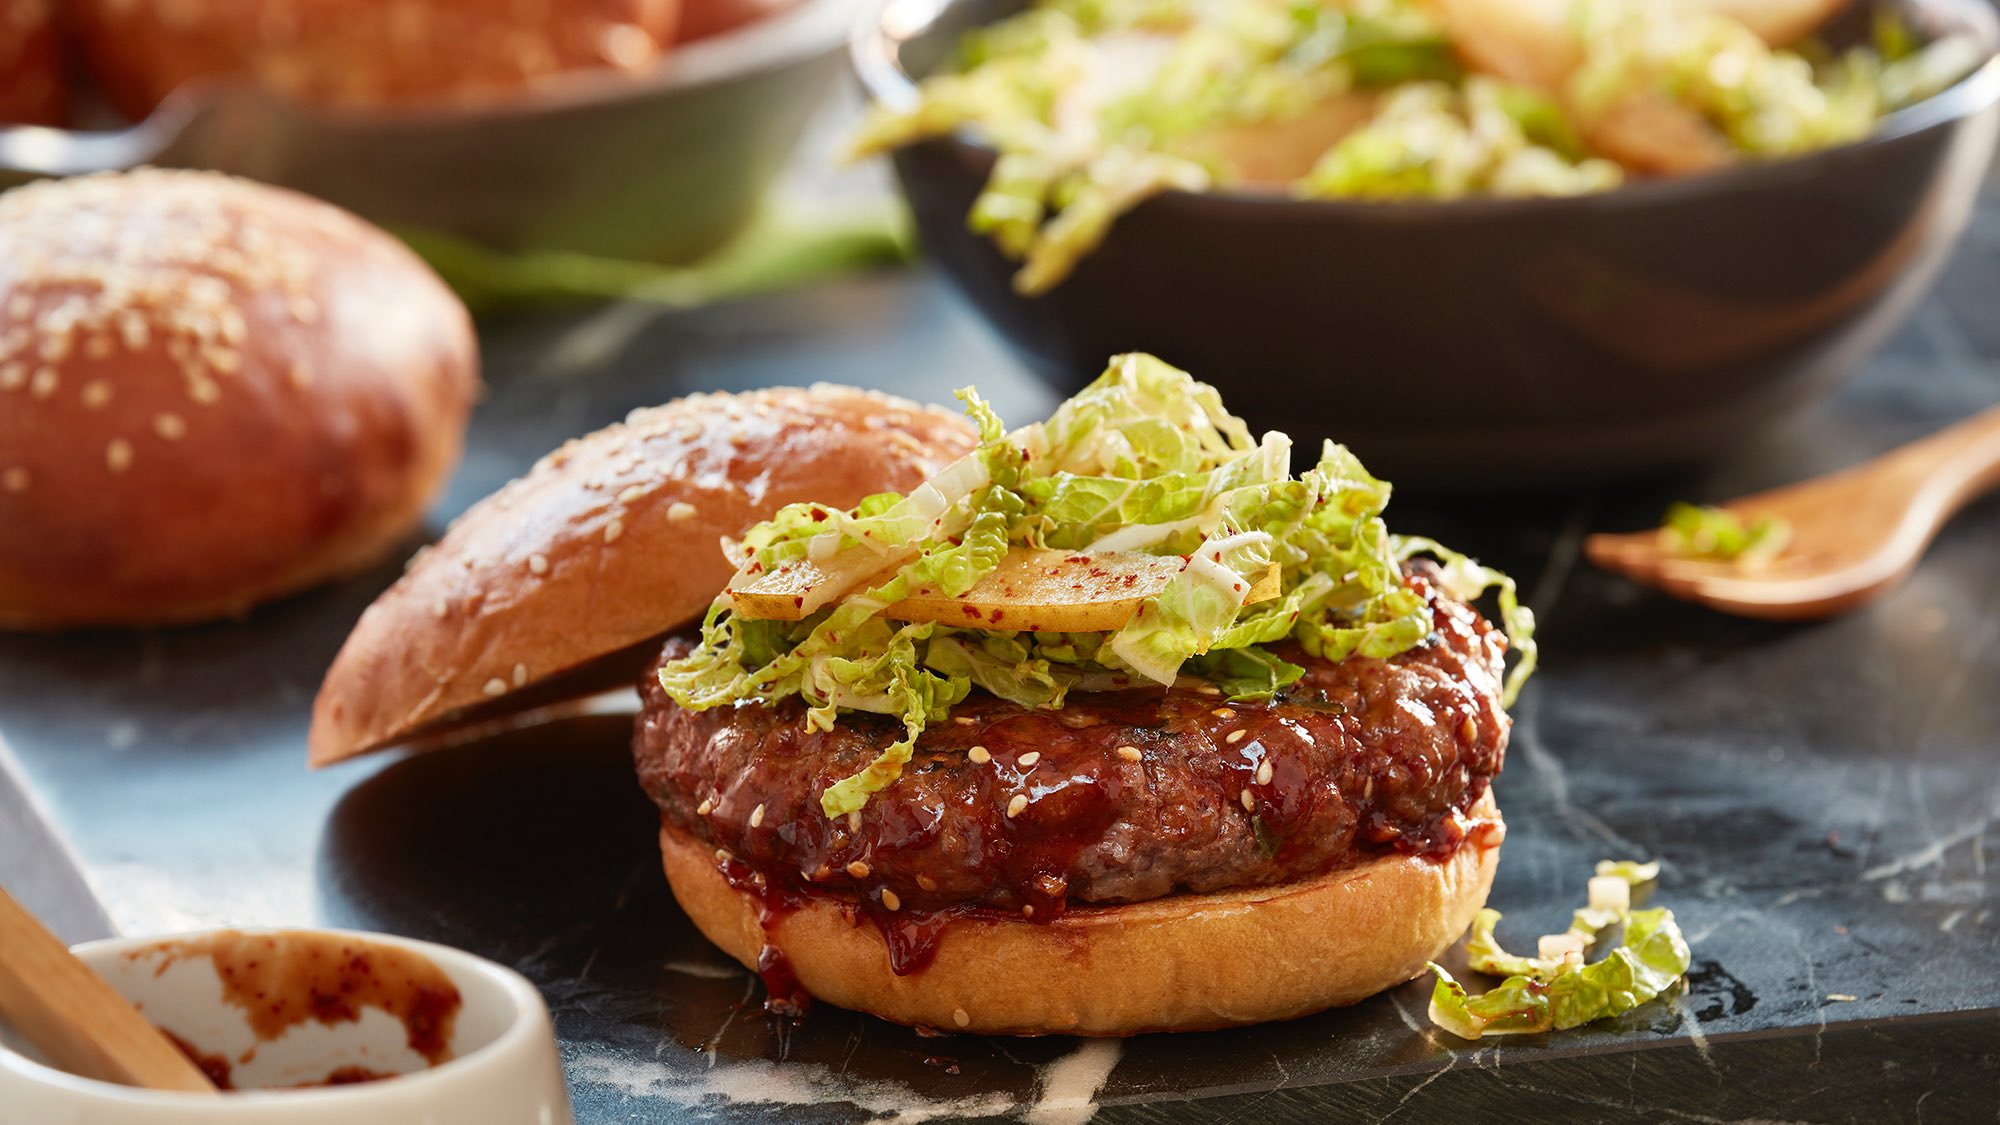 McCormick Gourmet Korean Burgers with Gochugaru BBQ Sauce and Kimchi Slaw